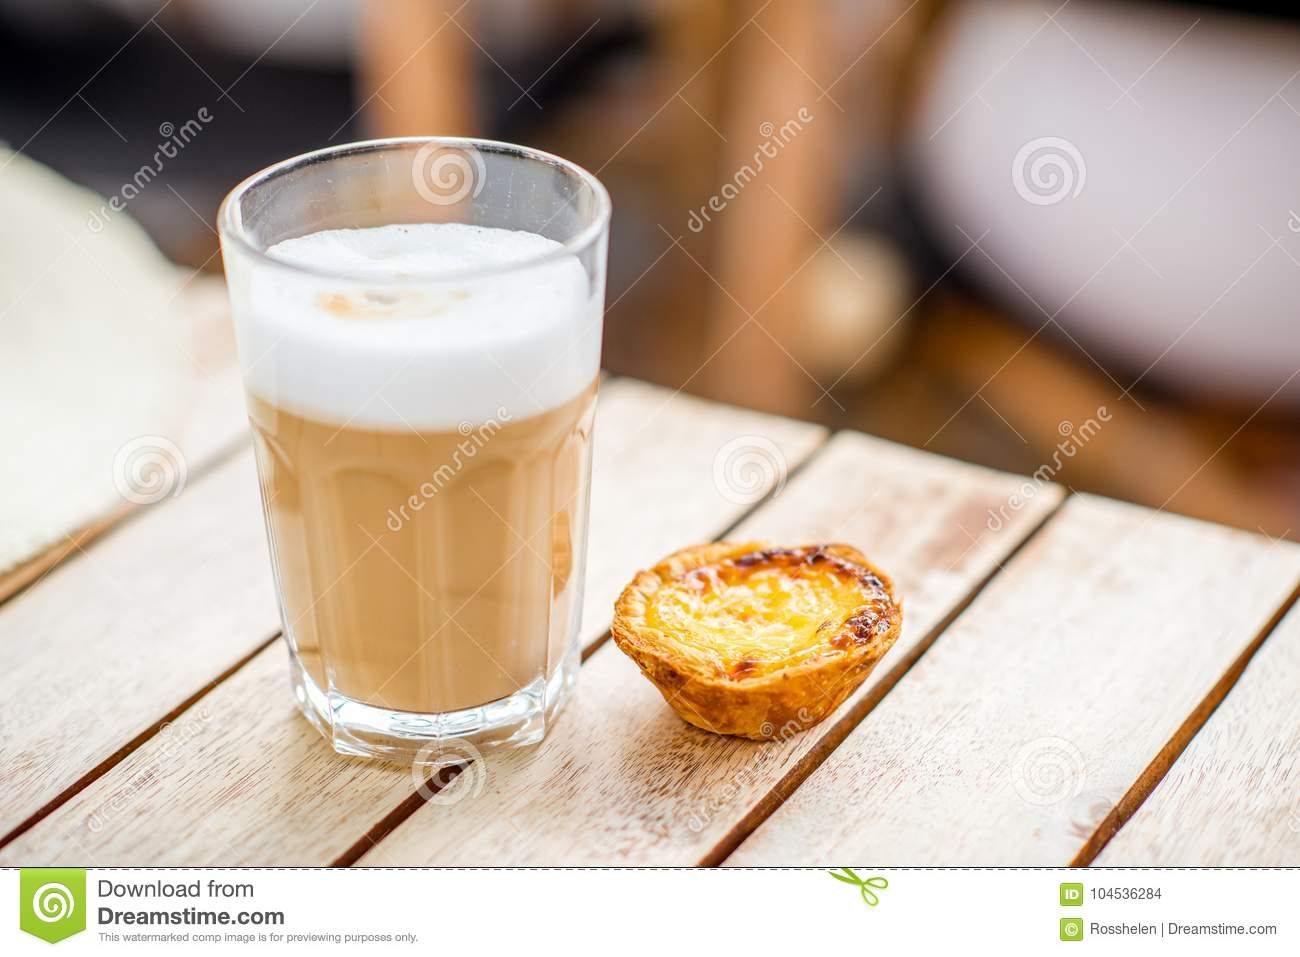 Portuguese coffee with sweet dessert